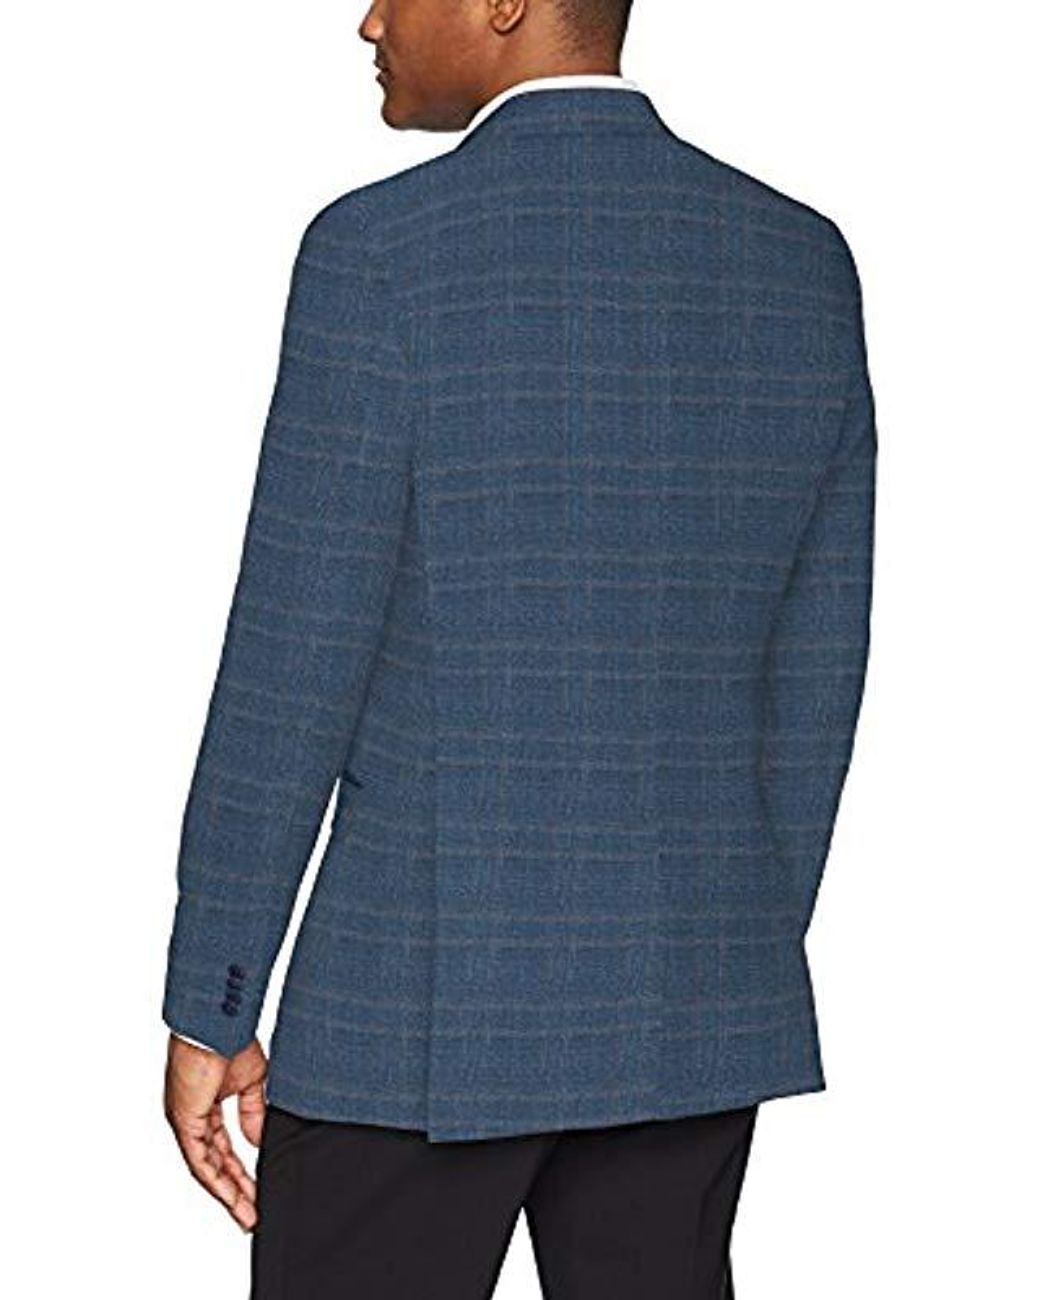 New Navy Sharkskin Tommy Hilfiger Mens Jacket Modern Fit Suit Separates with Stretch-Custom Jacket /& Pant Size Selection 42L